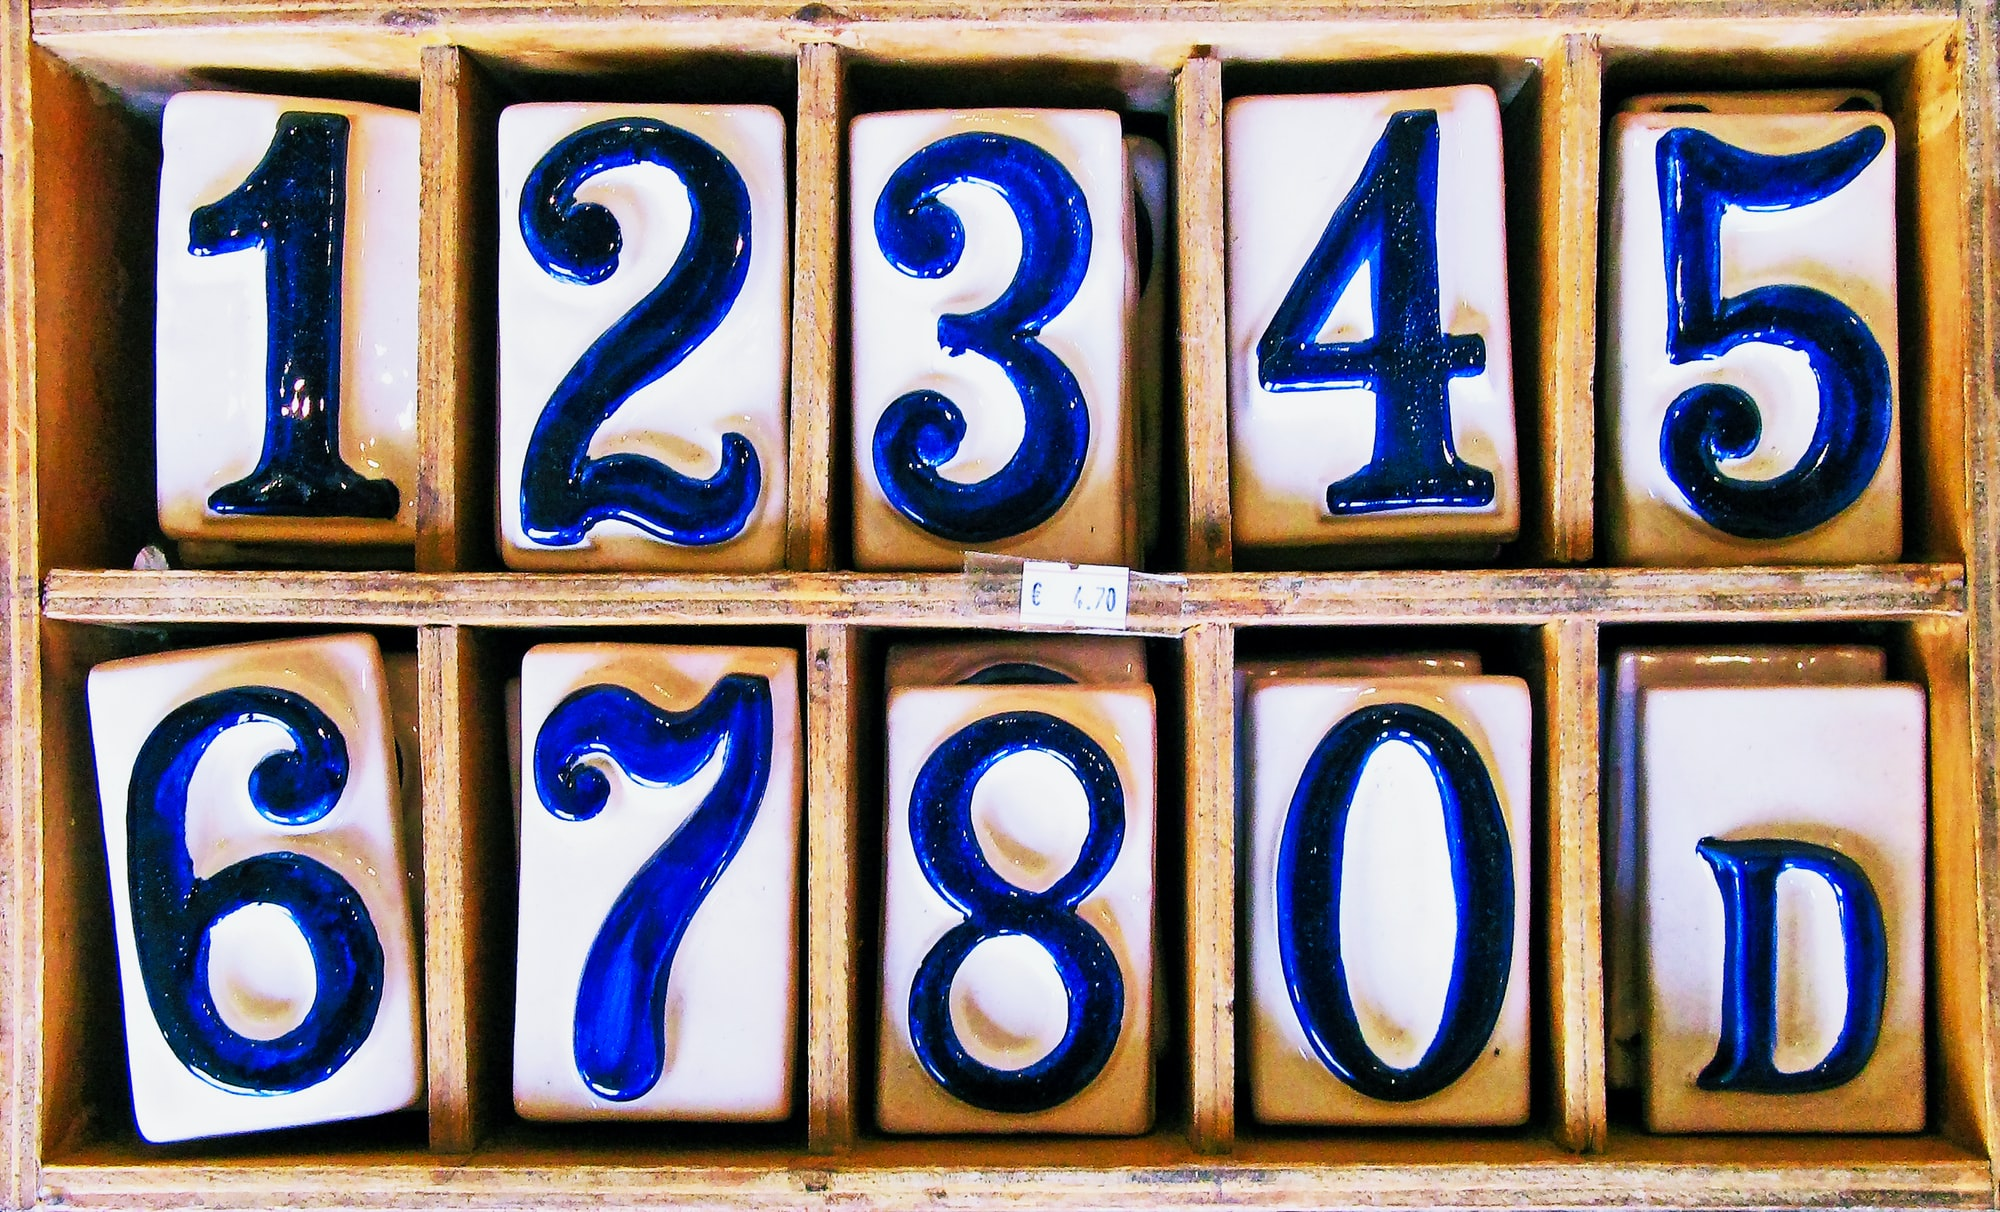 How to Use JavaScript Math.random() as a Random Number Generator